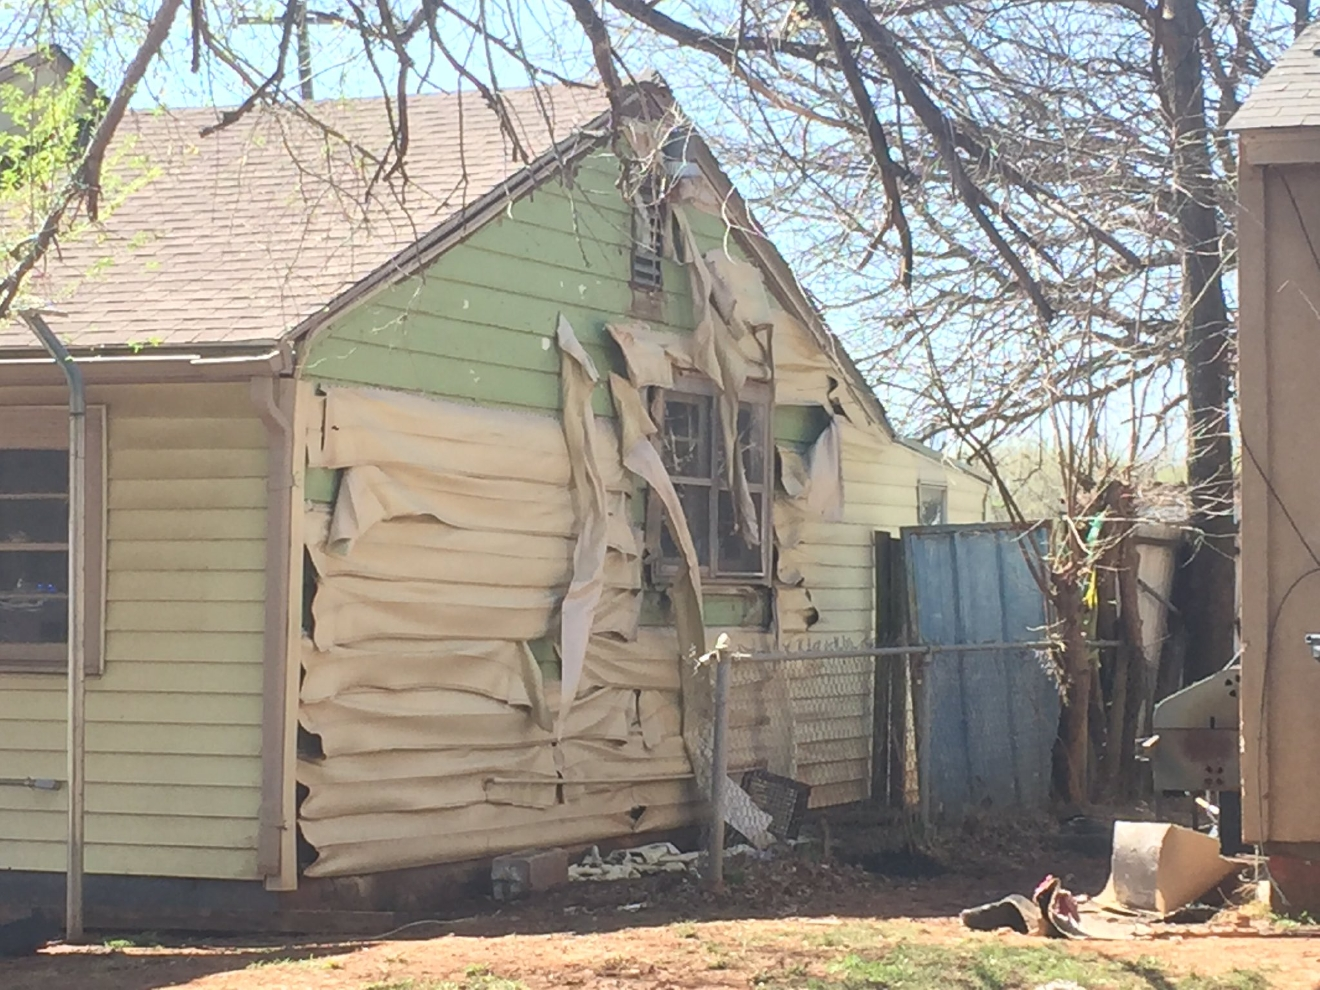 An Oklahoma City home was destroyed in a fire March 20. (KOKH/Colleen Wilson)